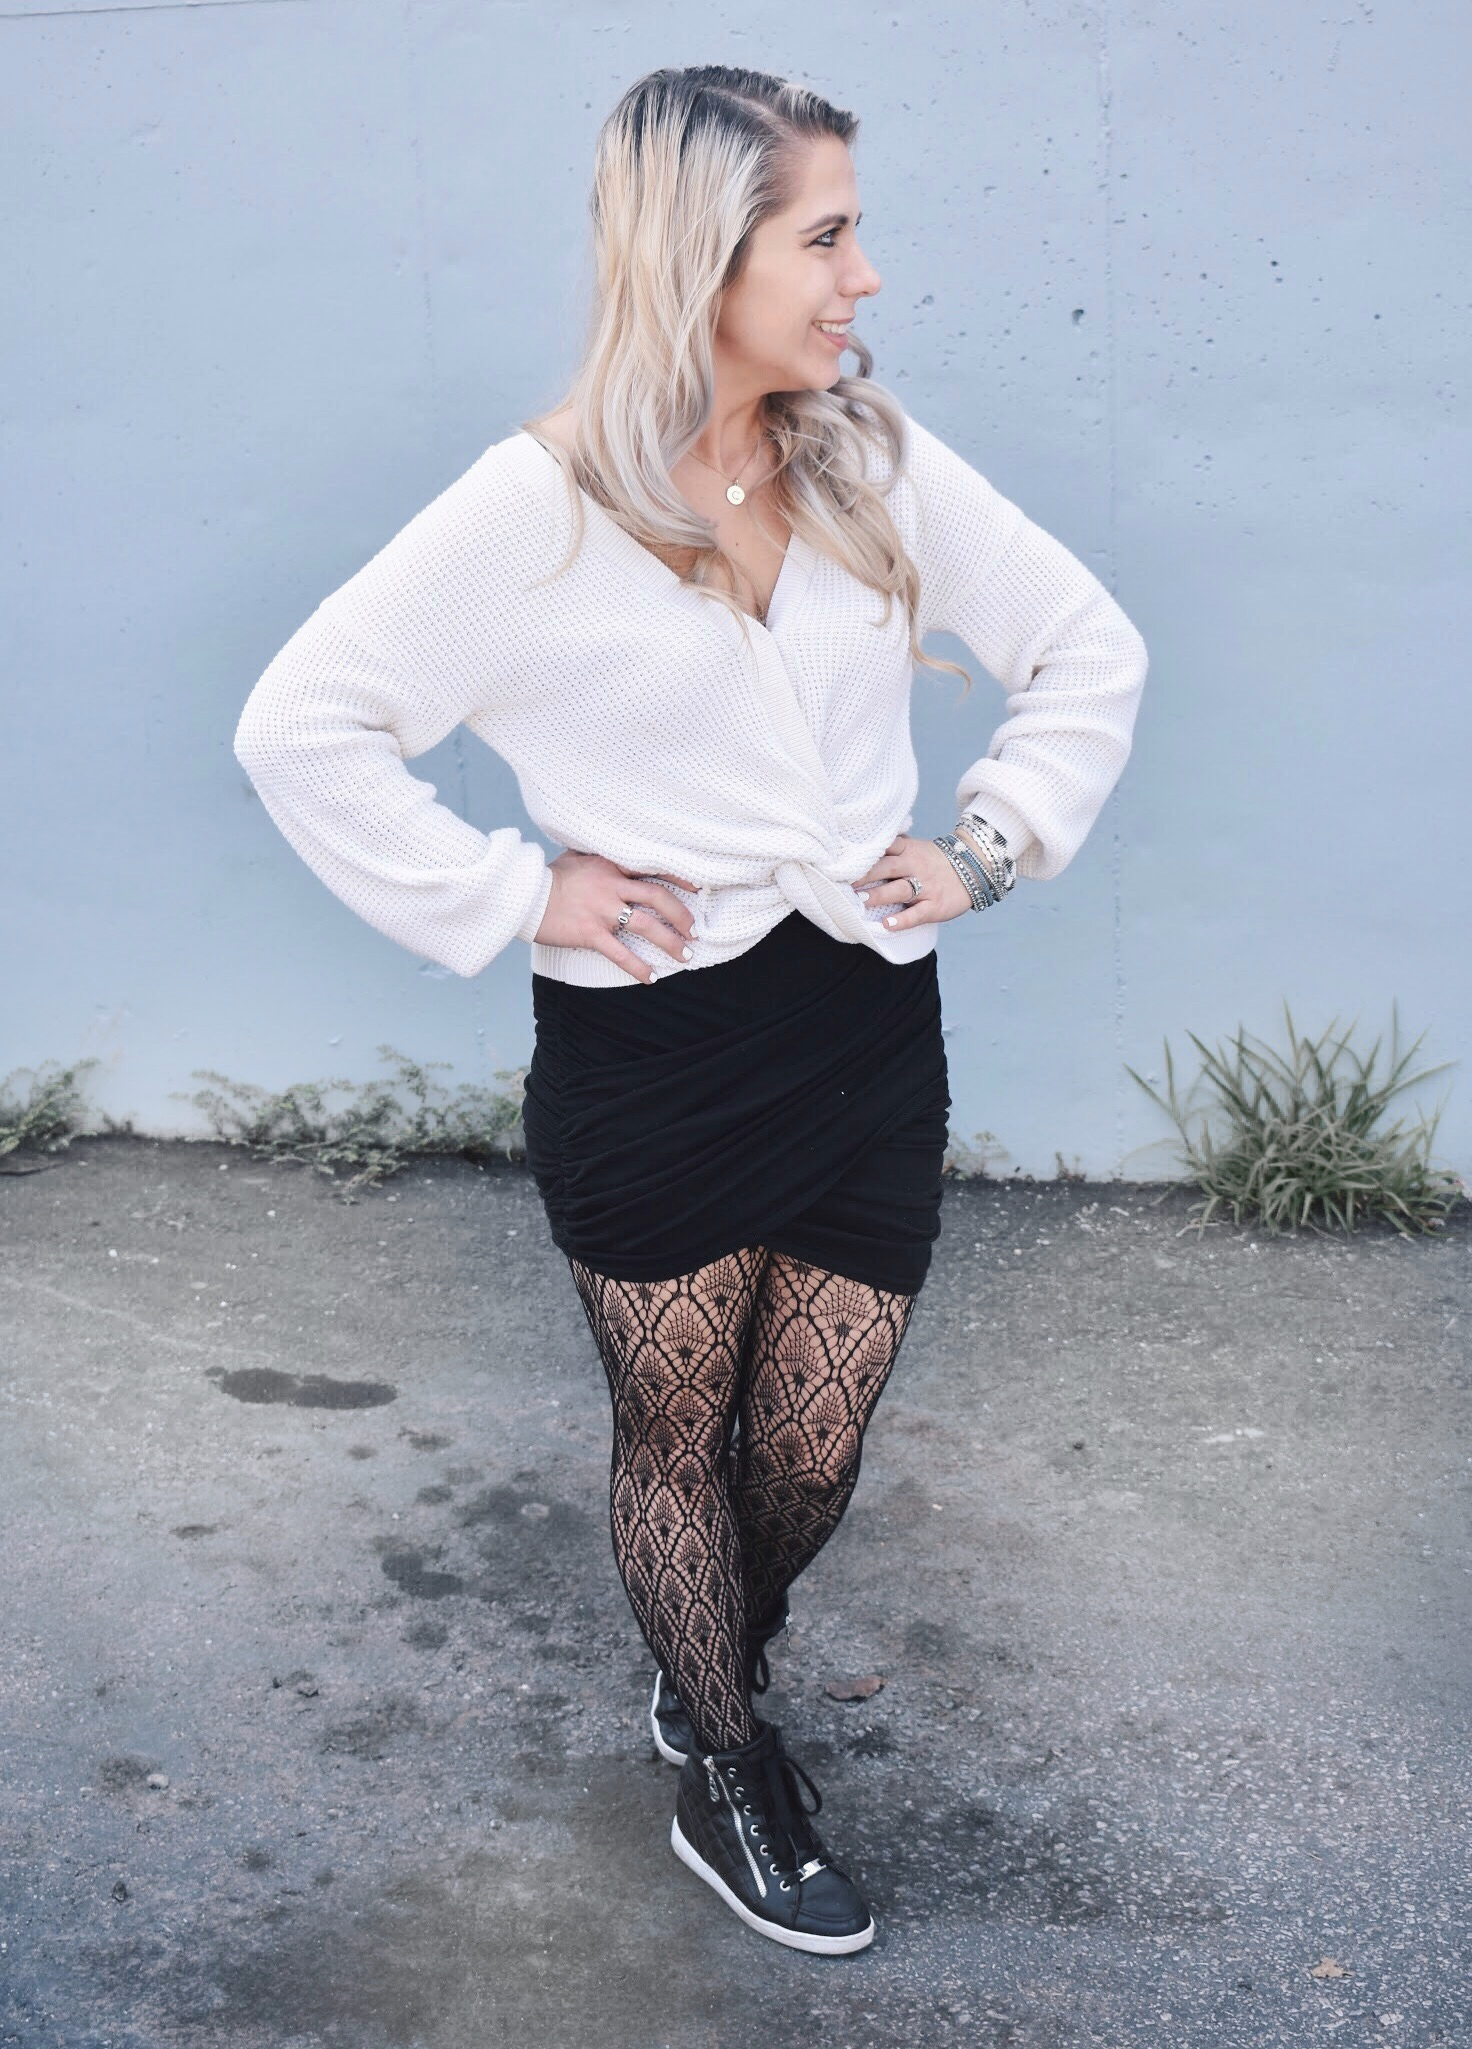 Fishnet Tights Outfit Ideas - Fall Street Style 2018 - Fashion blogger fishnet tights outfit showing how to use fishnet tights to transition your wardrobe to fall. Fishnet tights and mini skirt outfit helps you with how to wear a mini skirt in fall. Plus, this twist-front sweater is the cutest you'll ever see! Check out this Street Style Fall 2018 inspiration! #LikeTKit #Fishnets #FishnetTights #FallFashion #WomensFashion